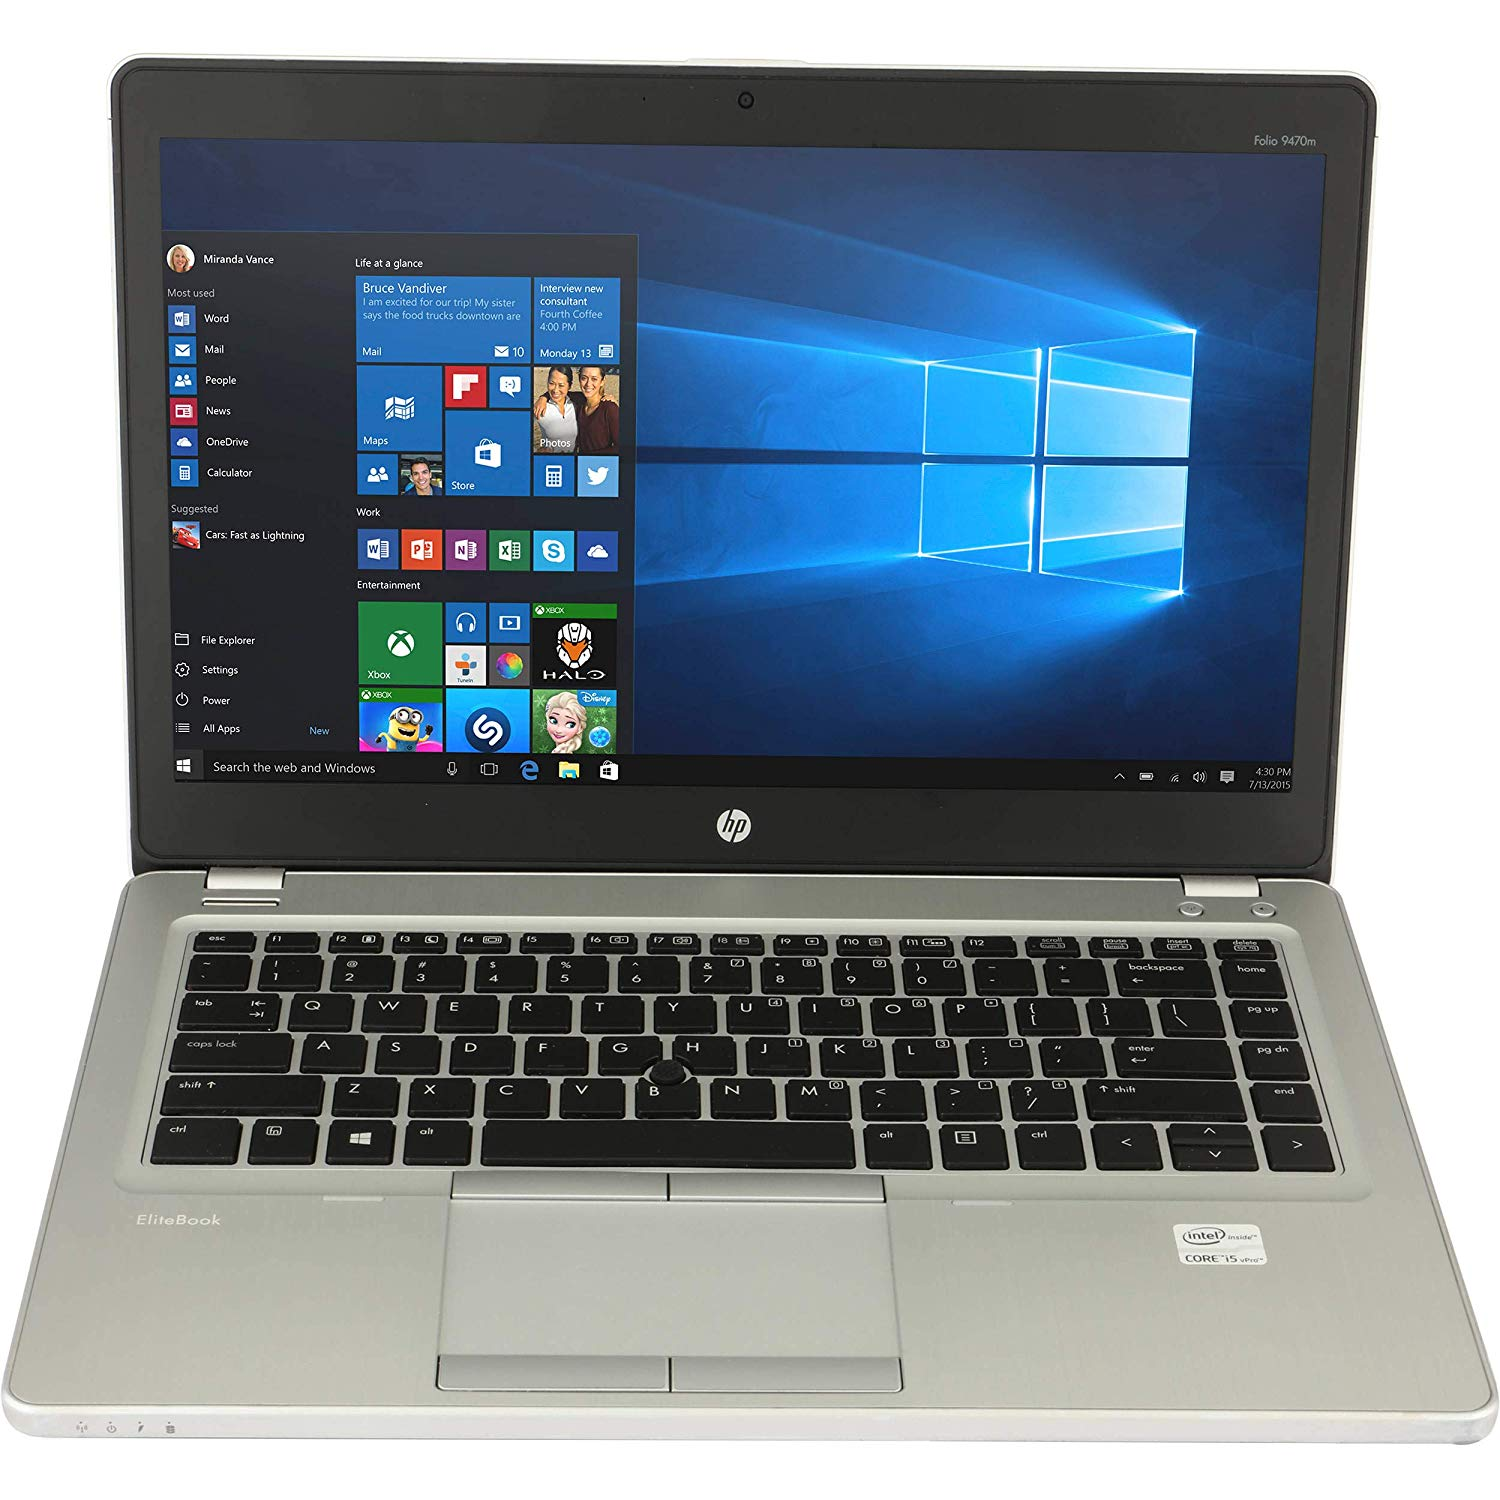 HP Elitebook 9470m ( Intel Core i5 3437u-4Gb-128Gb SSD-14